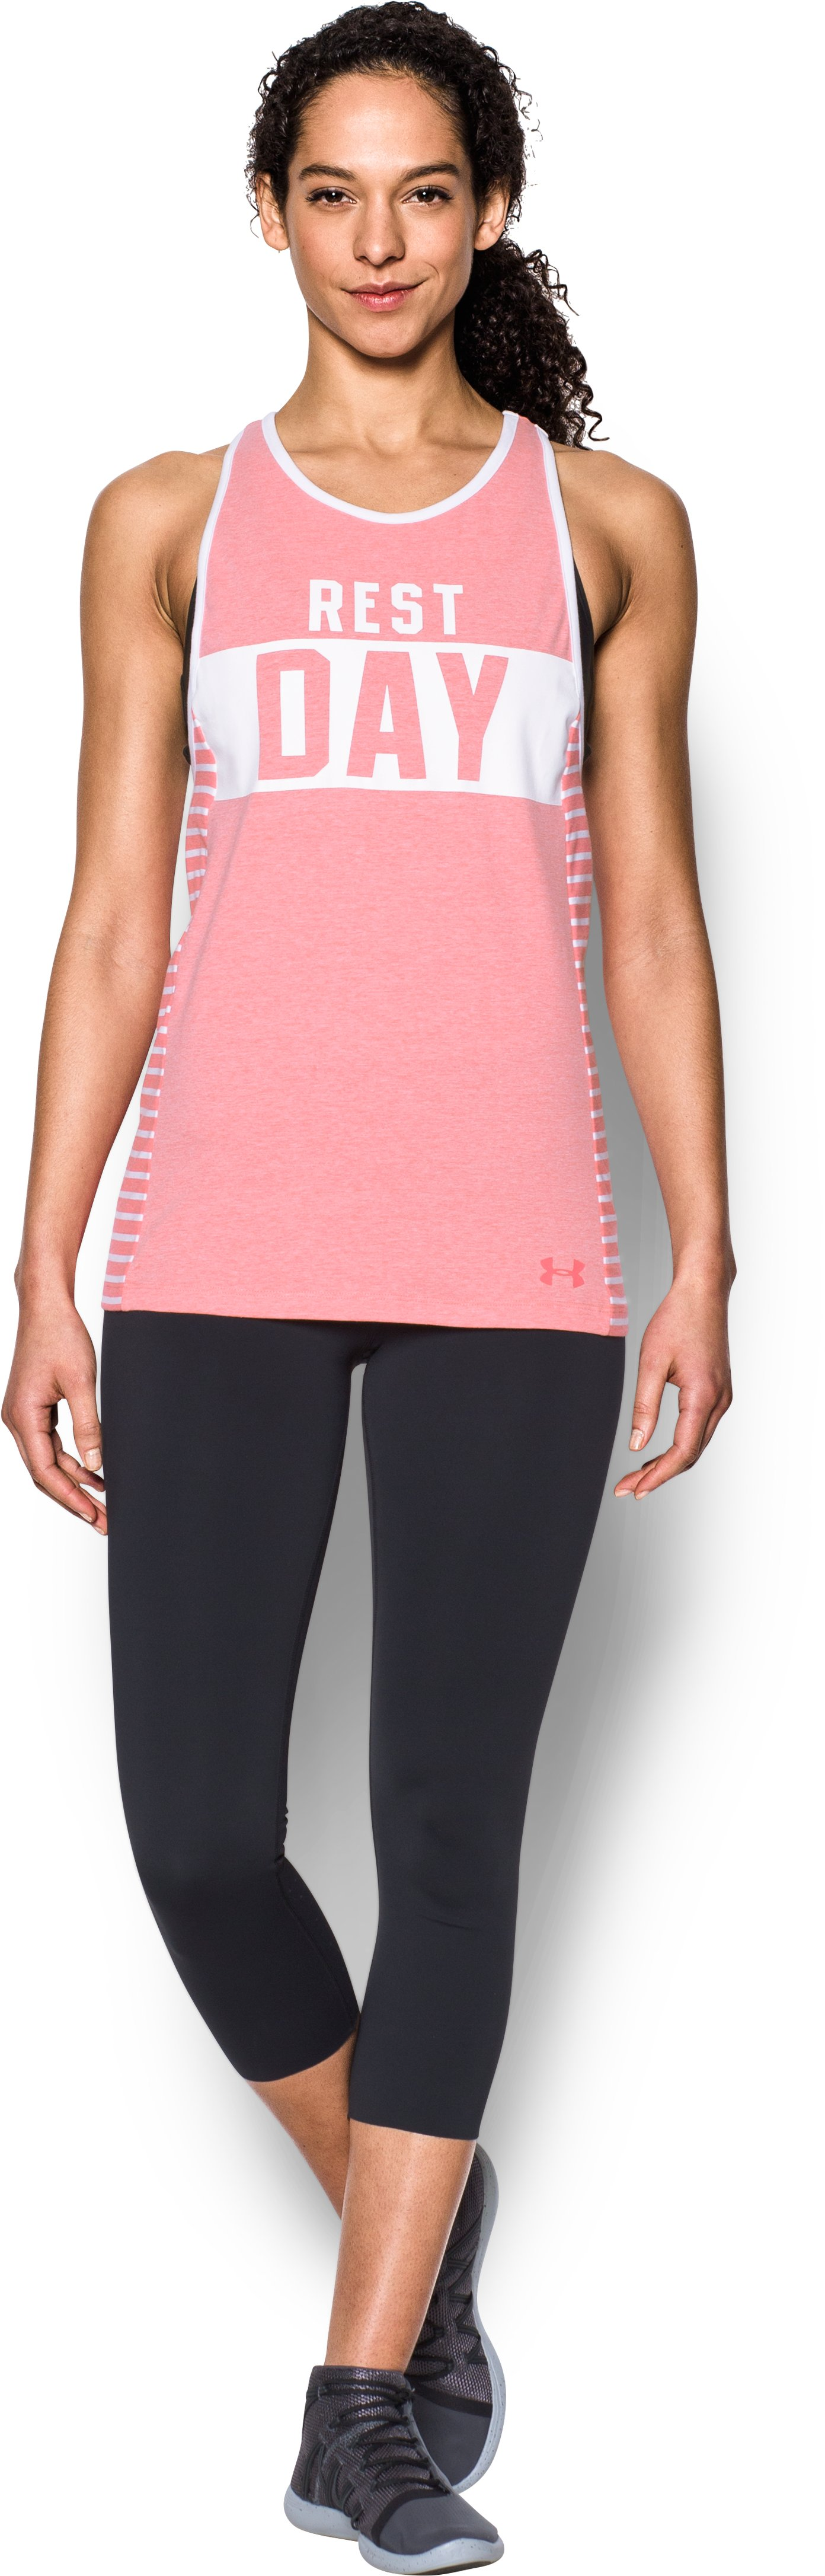 Women's UA Rest Day Graphic Tank, PERFECTION LIGHT HEATHER